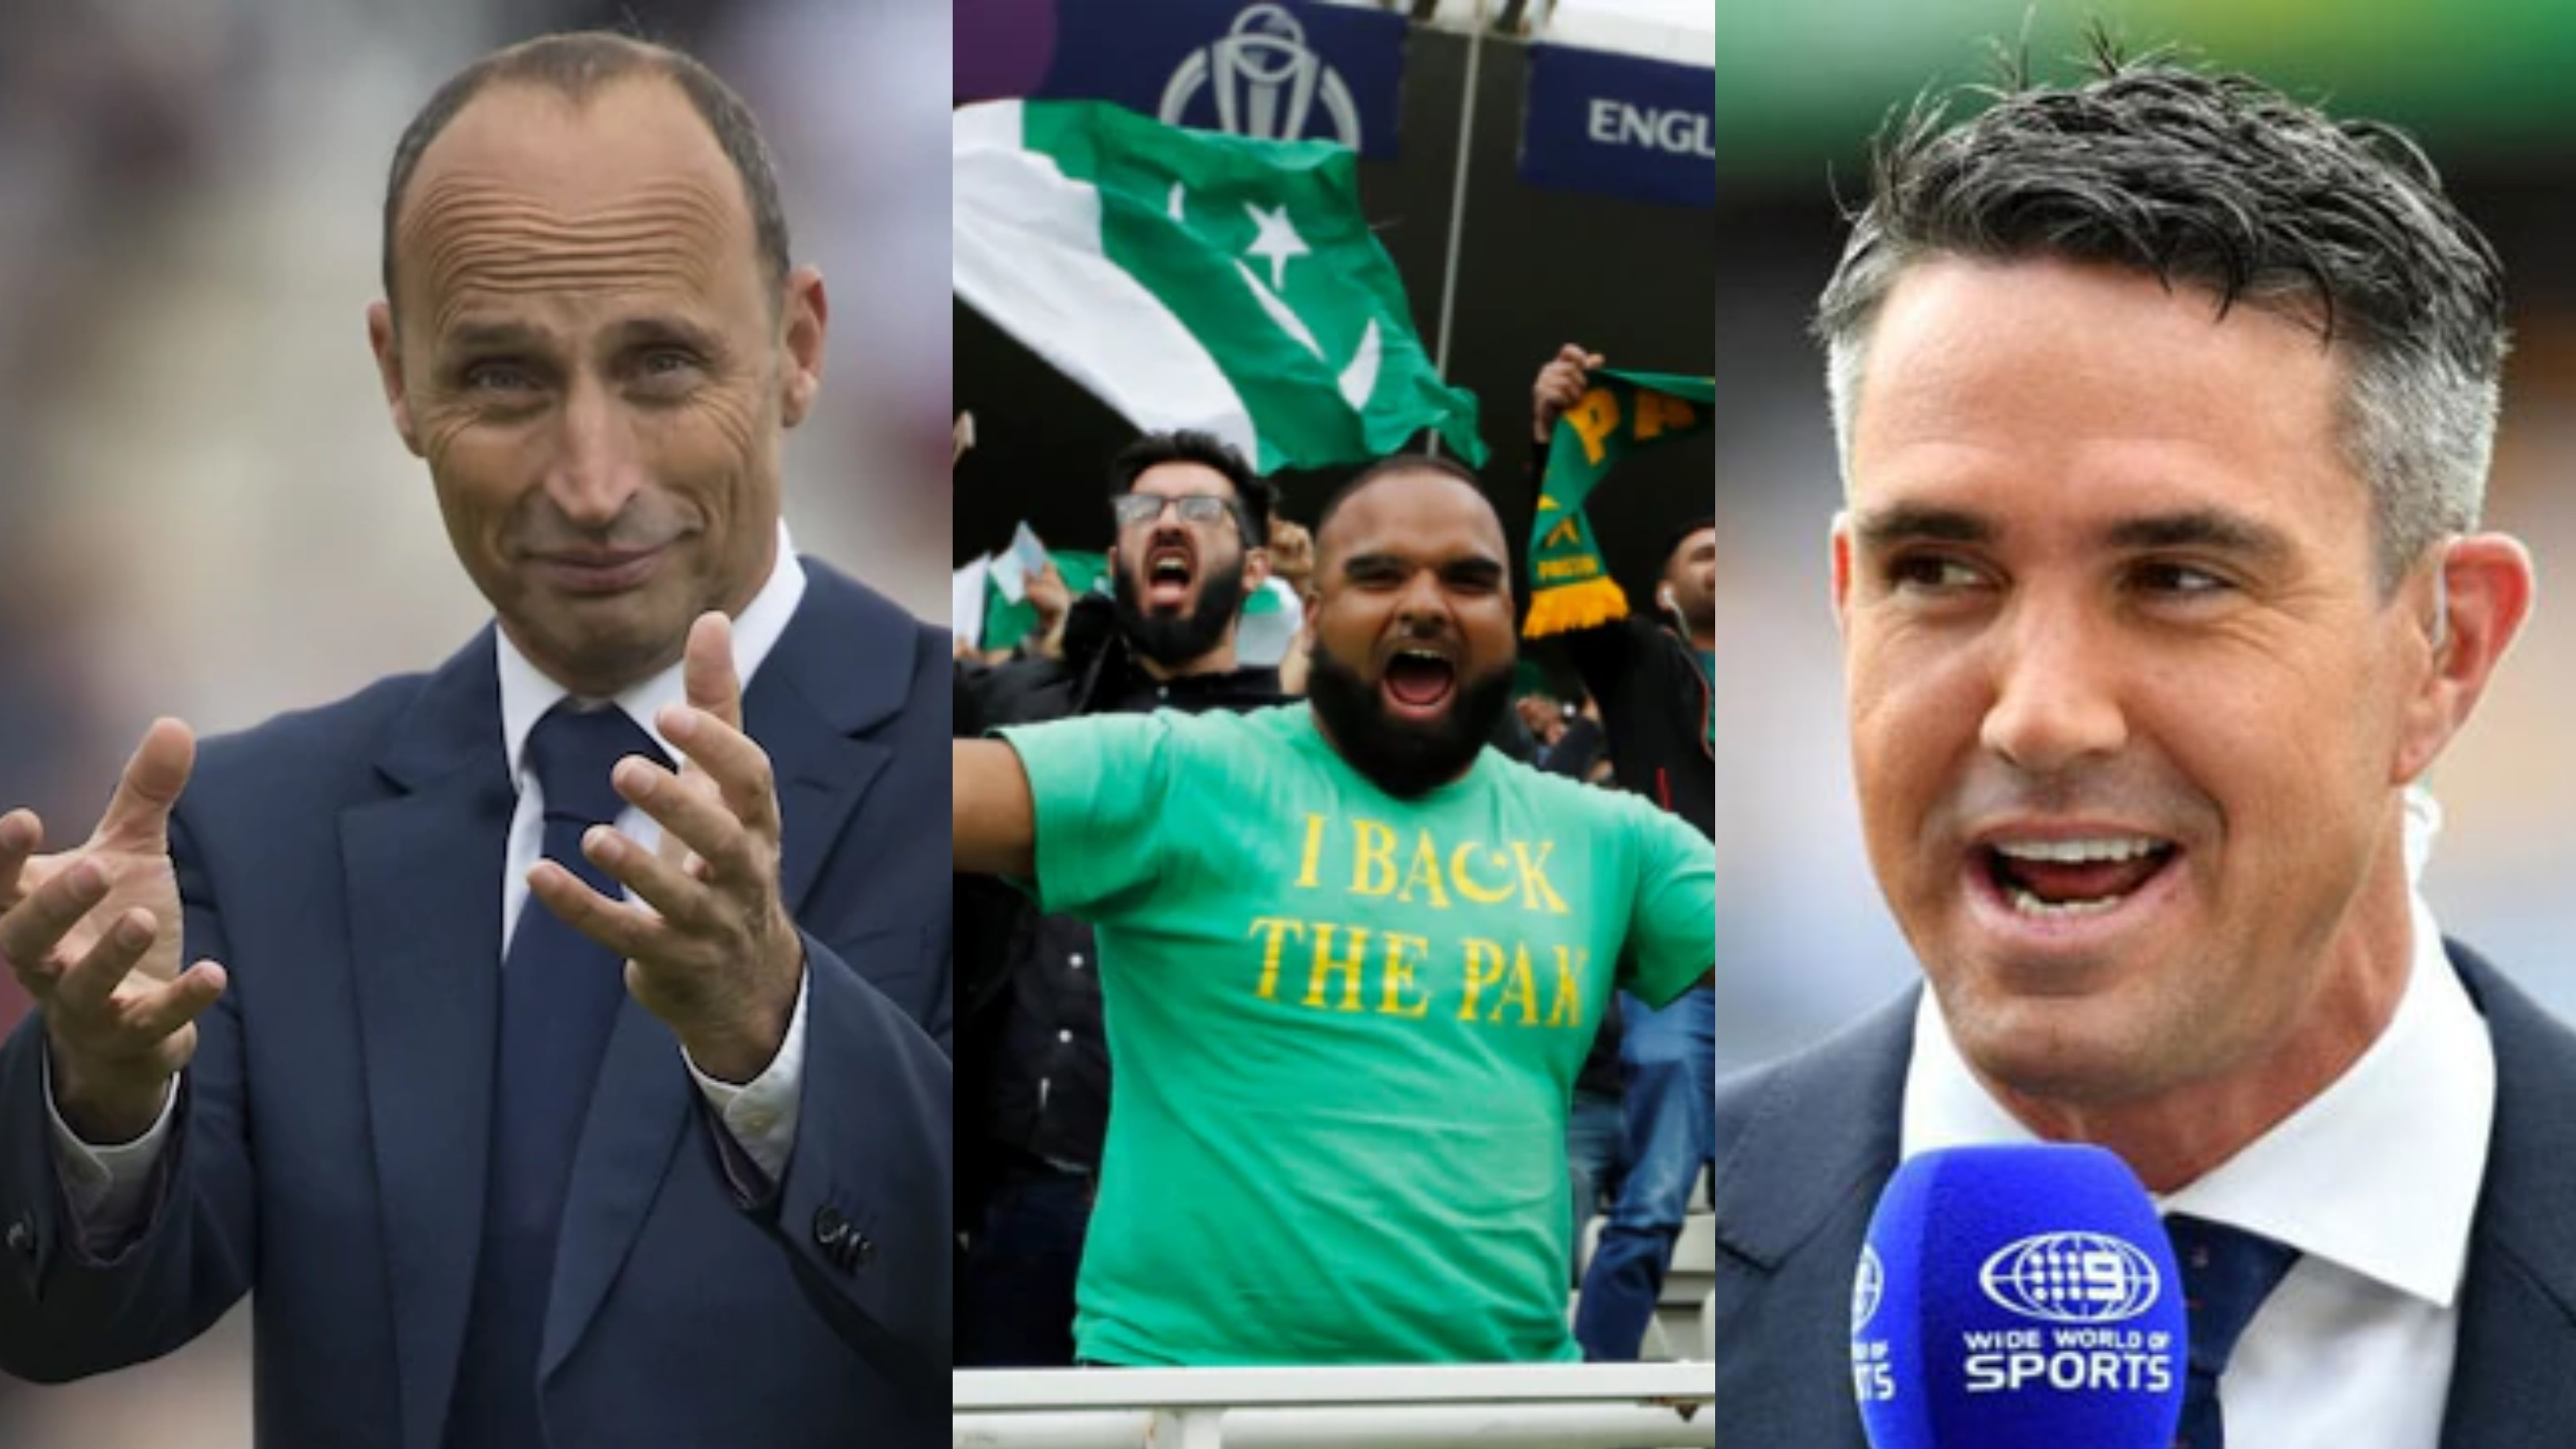 CWC 2019: Kevin Pietersen and Nasser Hussain involve in a funny Twitter banter over England-India clash